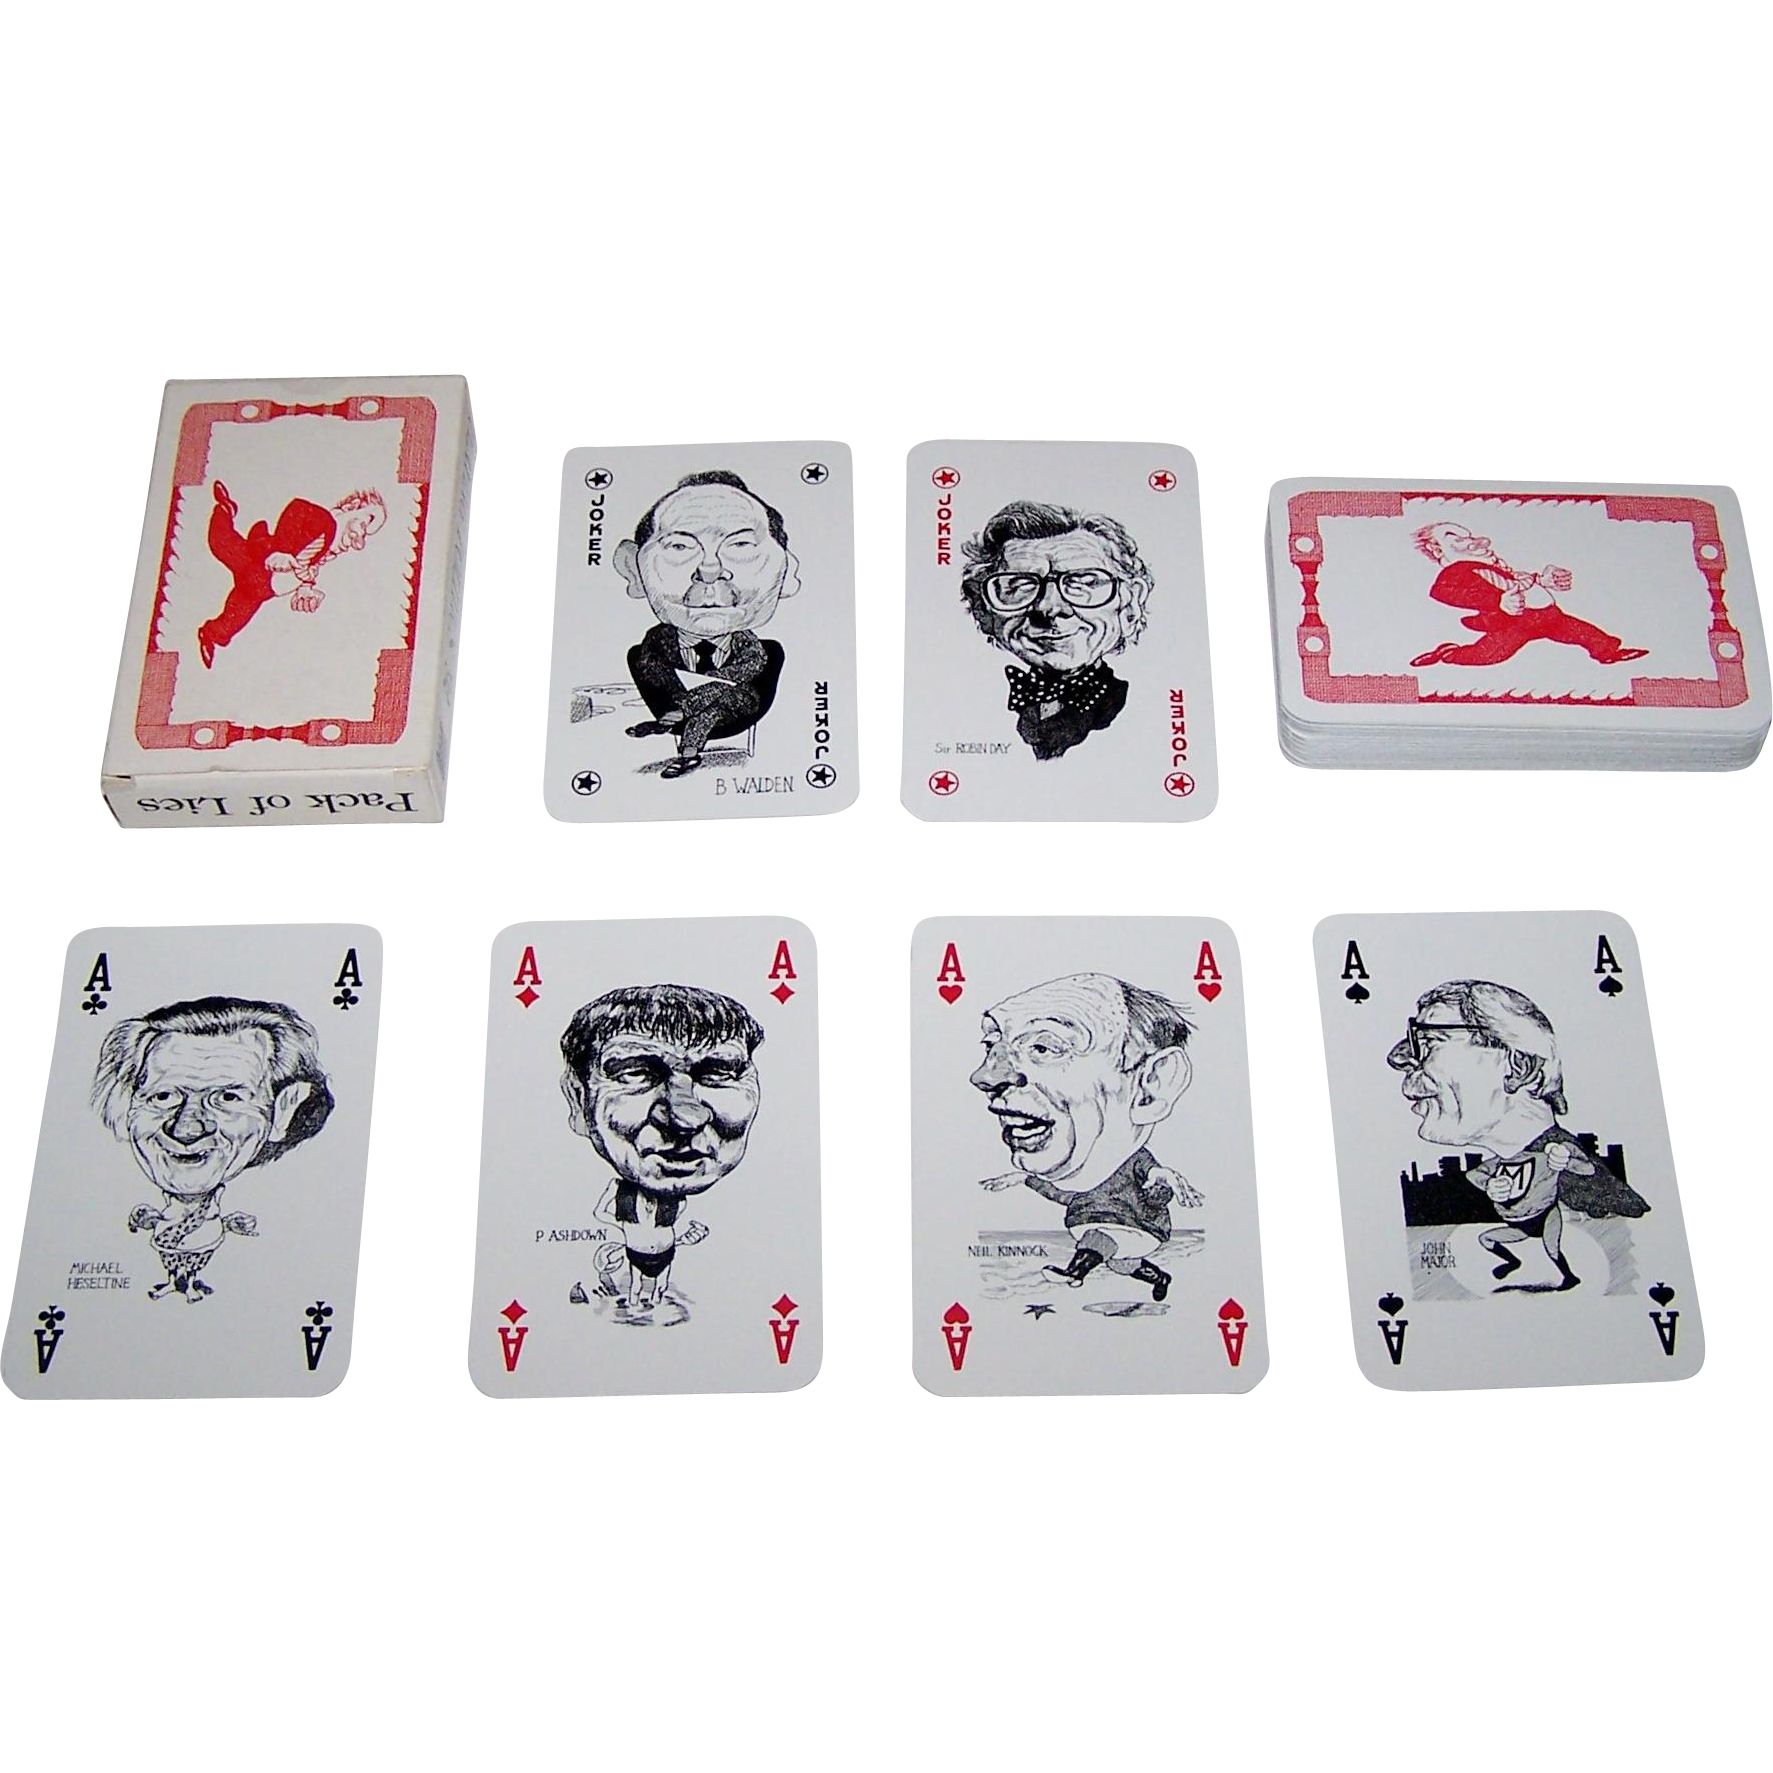 "InterCol ""Playing Politics '92 – Pack of Lies"" Playing Cards, Grant Robertson Designs, c.1992"